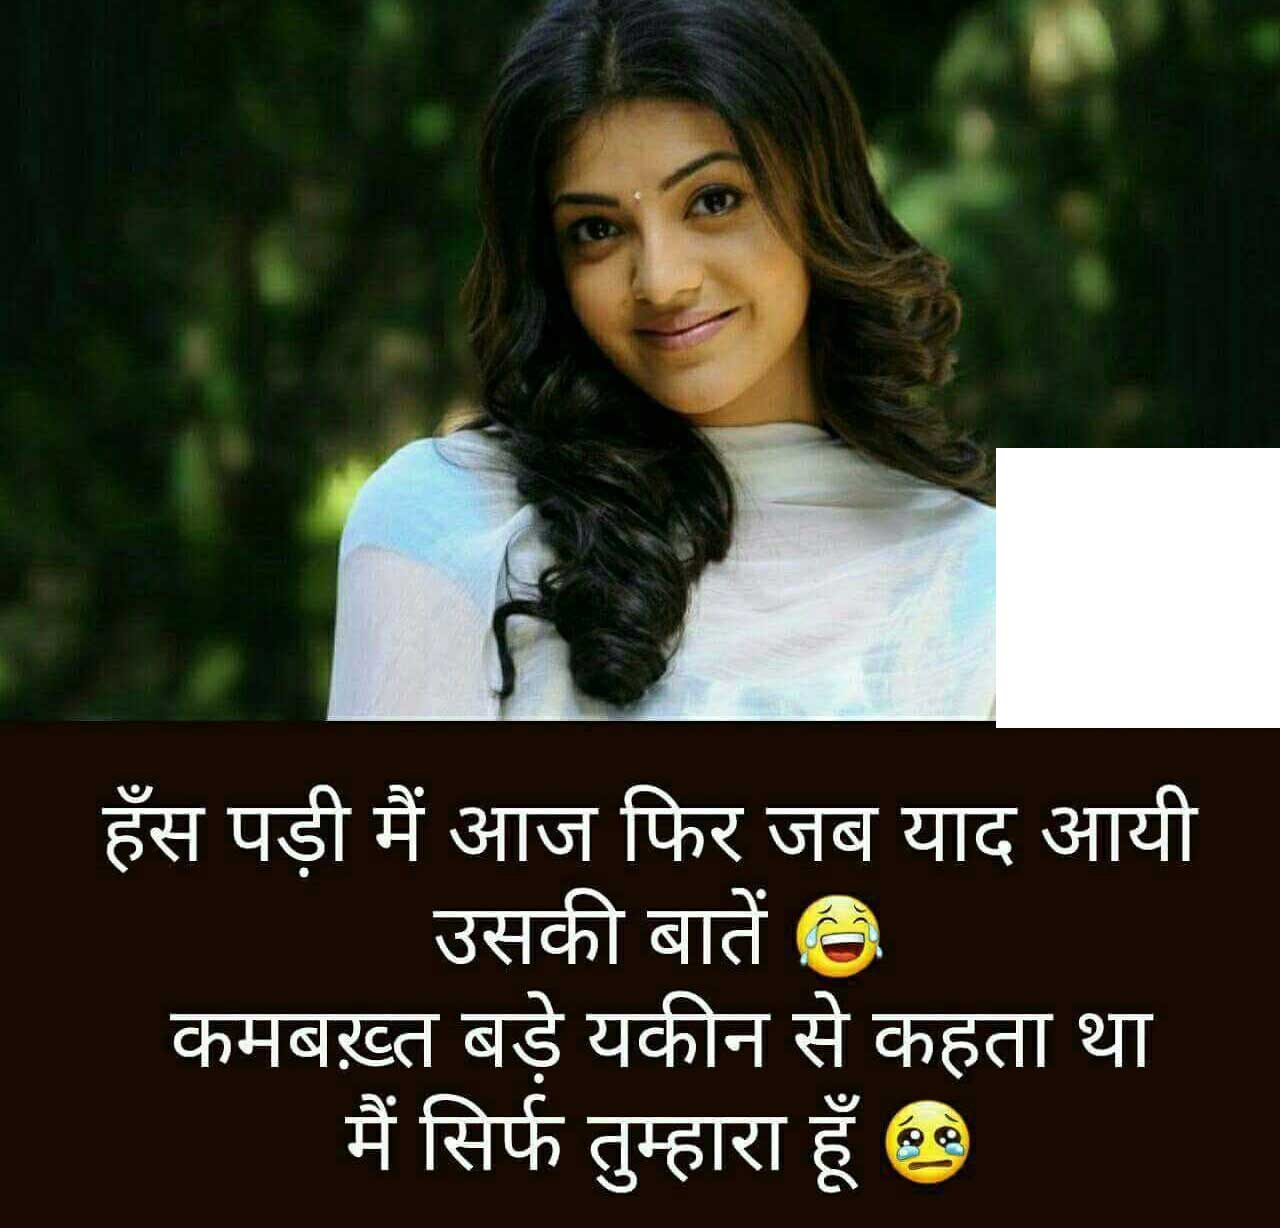 Whatsapp DP Love Shayari Images Pics Download for GF